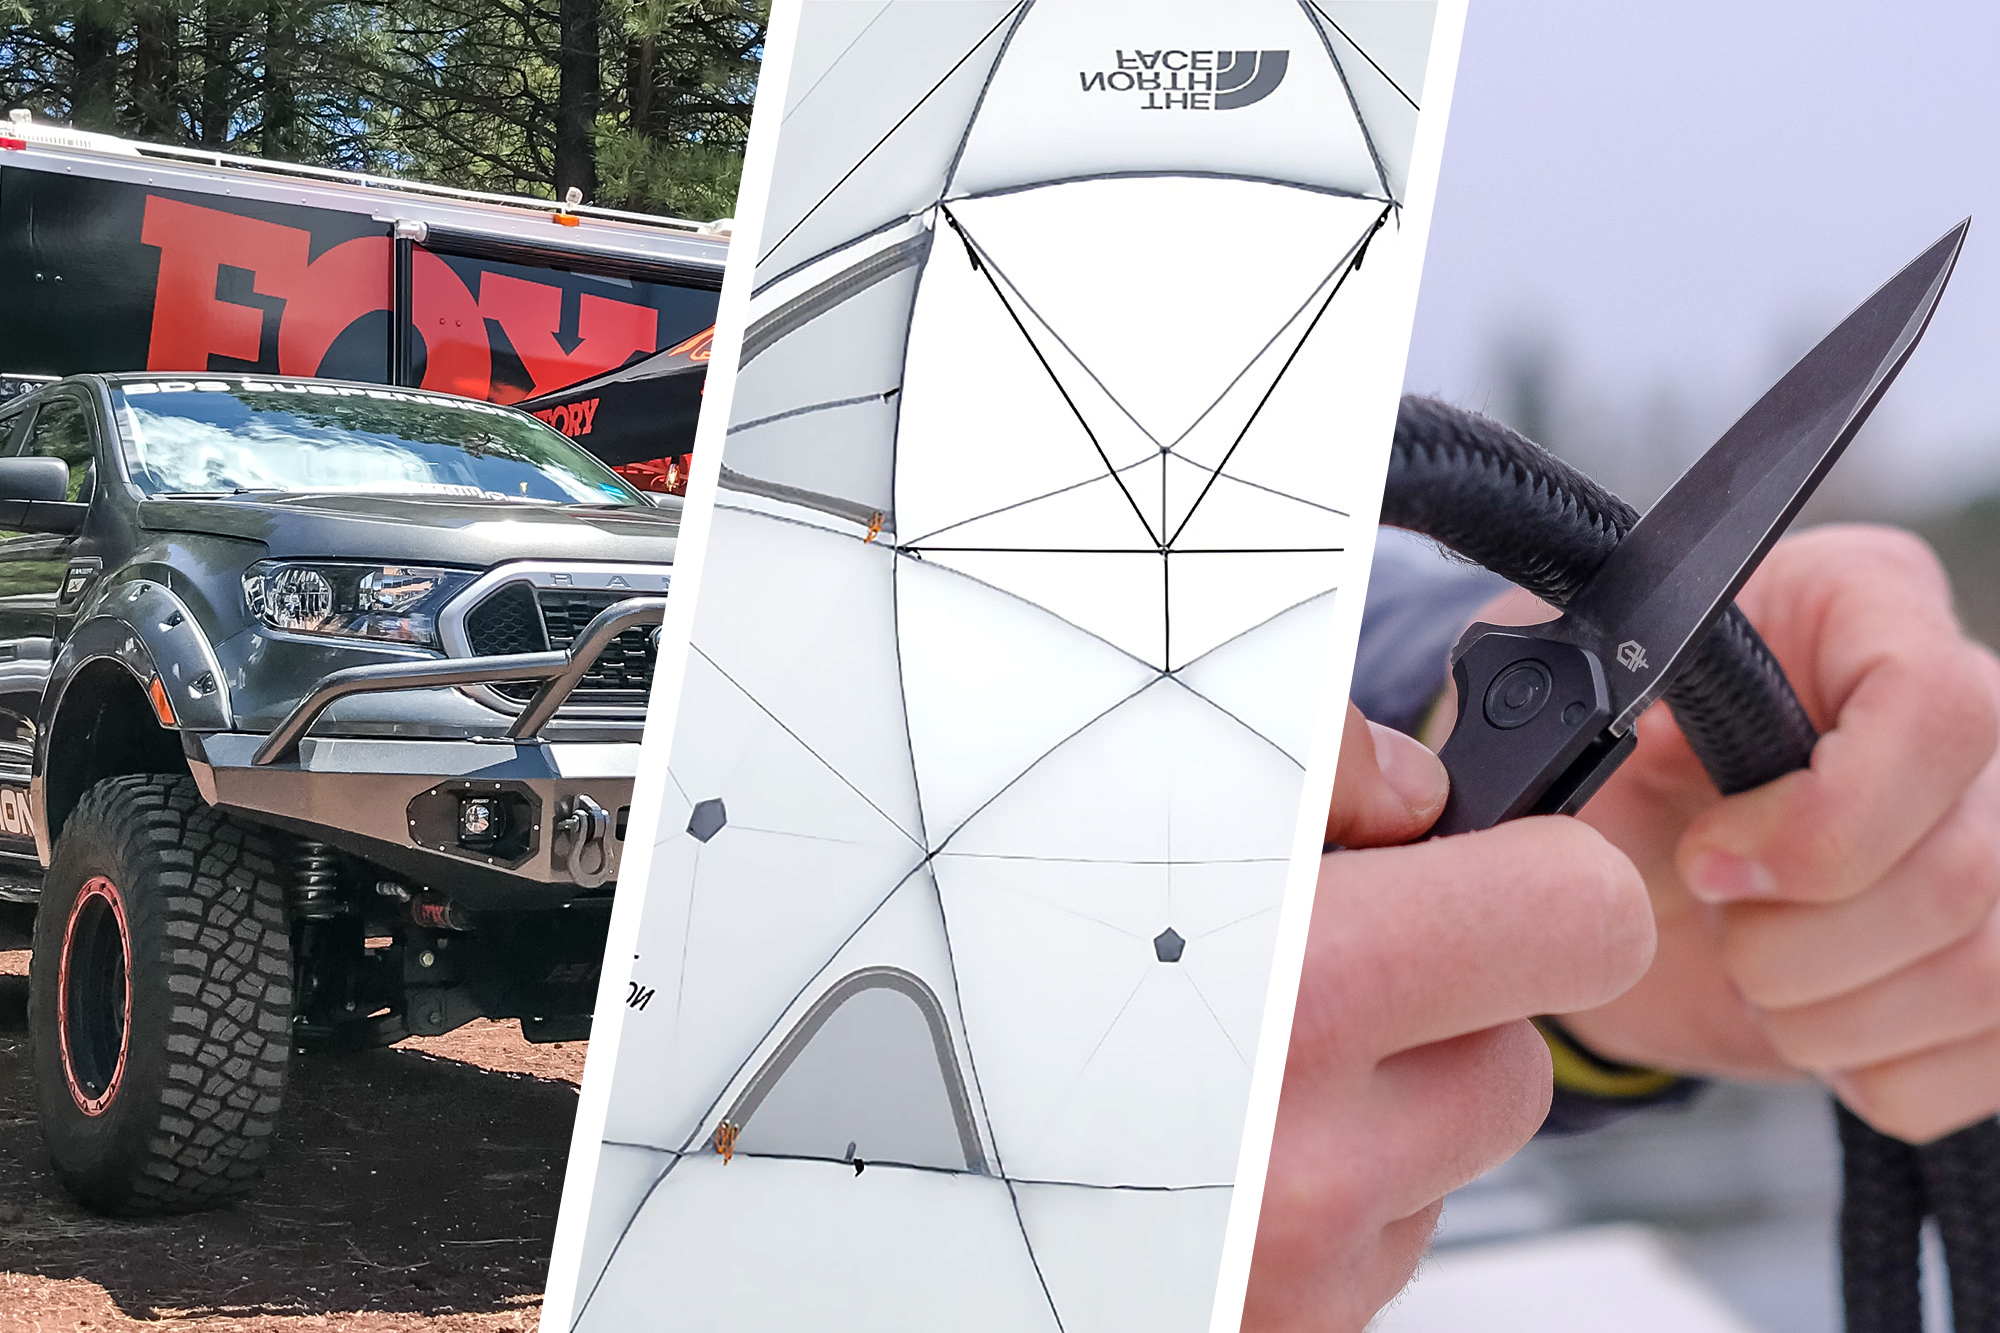 Trending: Our Top Outdoor Stories This Week | GearJunkie